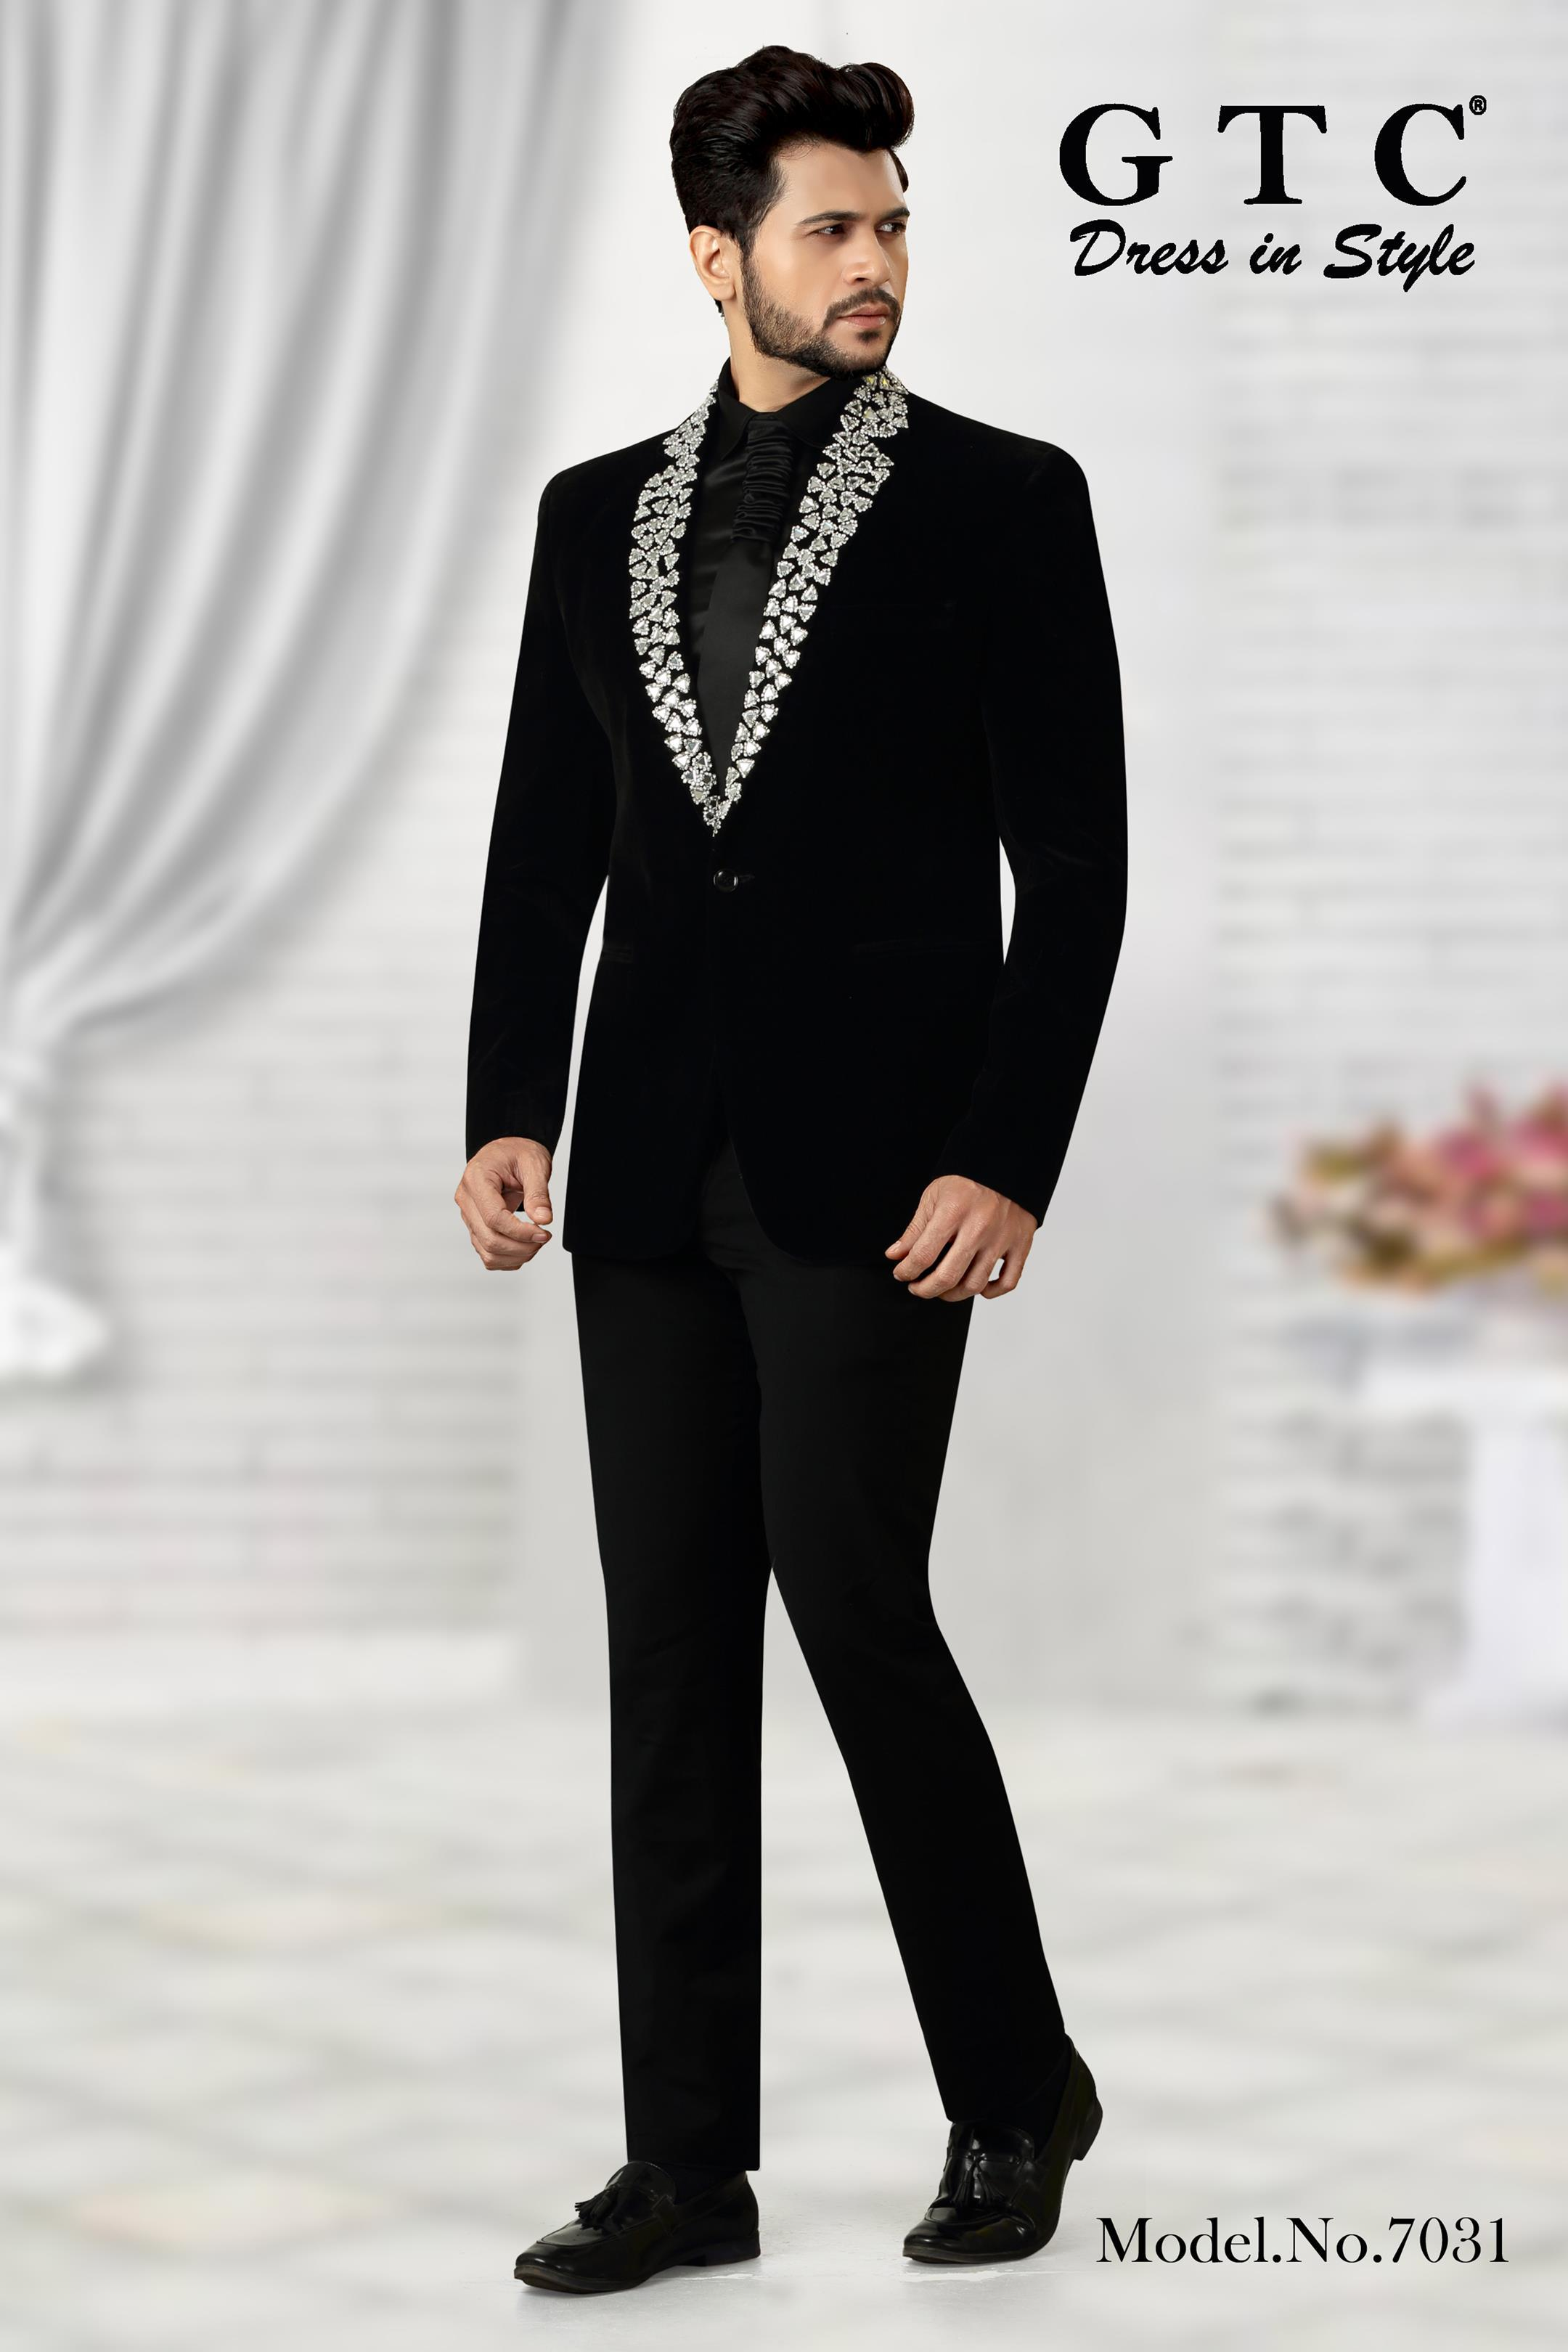 7031 WEDDING SUIT